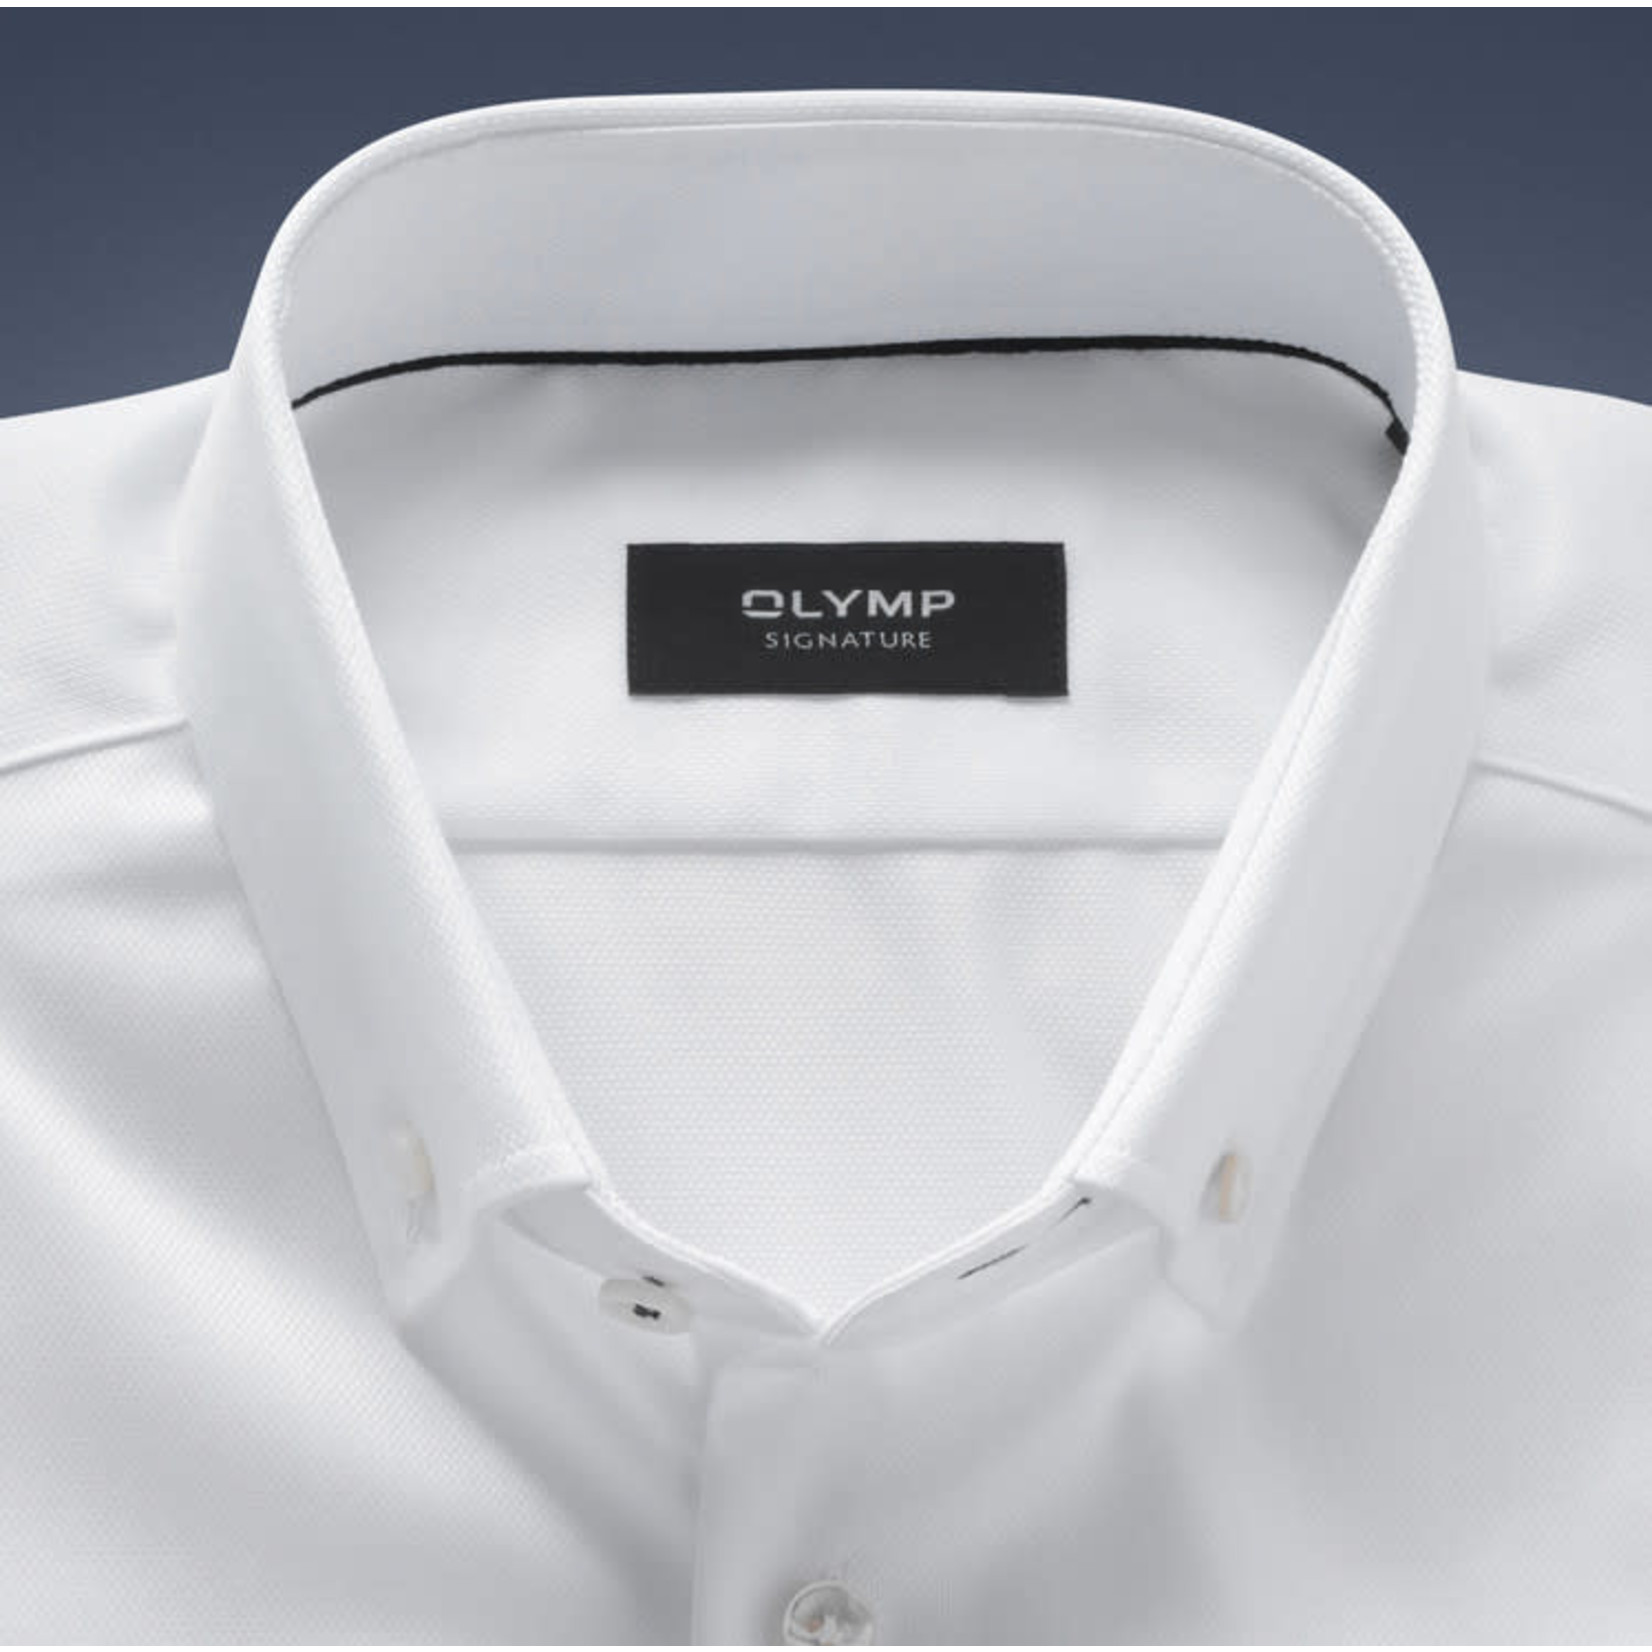 Olymp Signature overhemd wit met button down boord